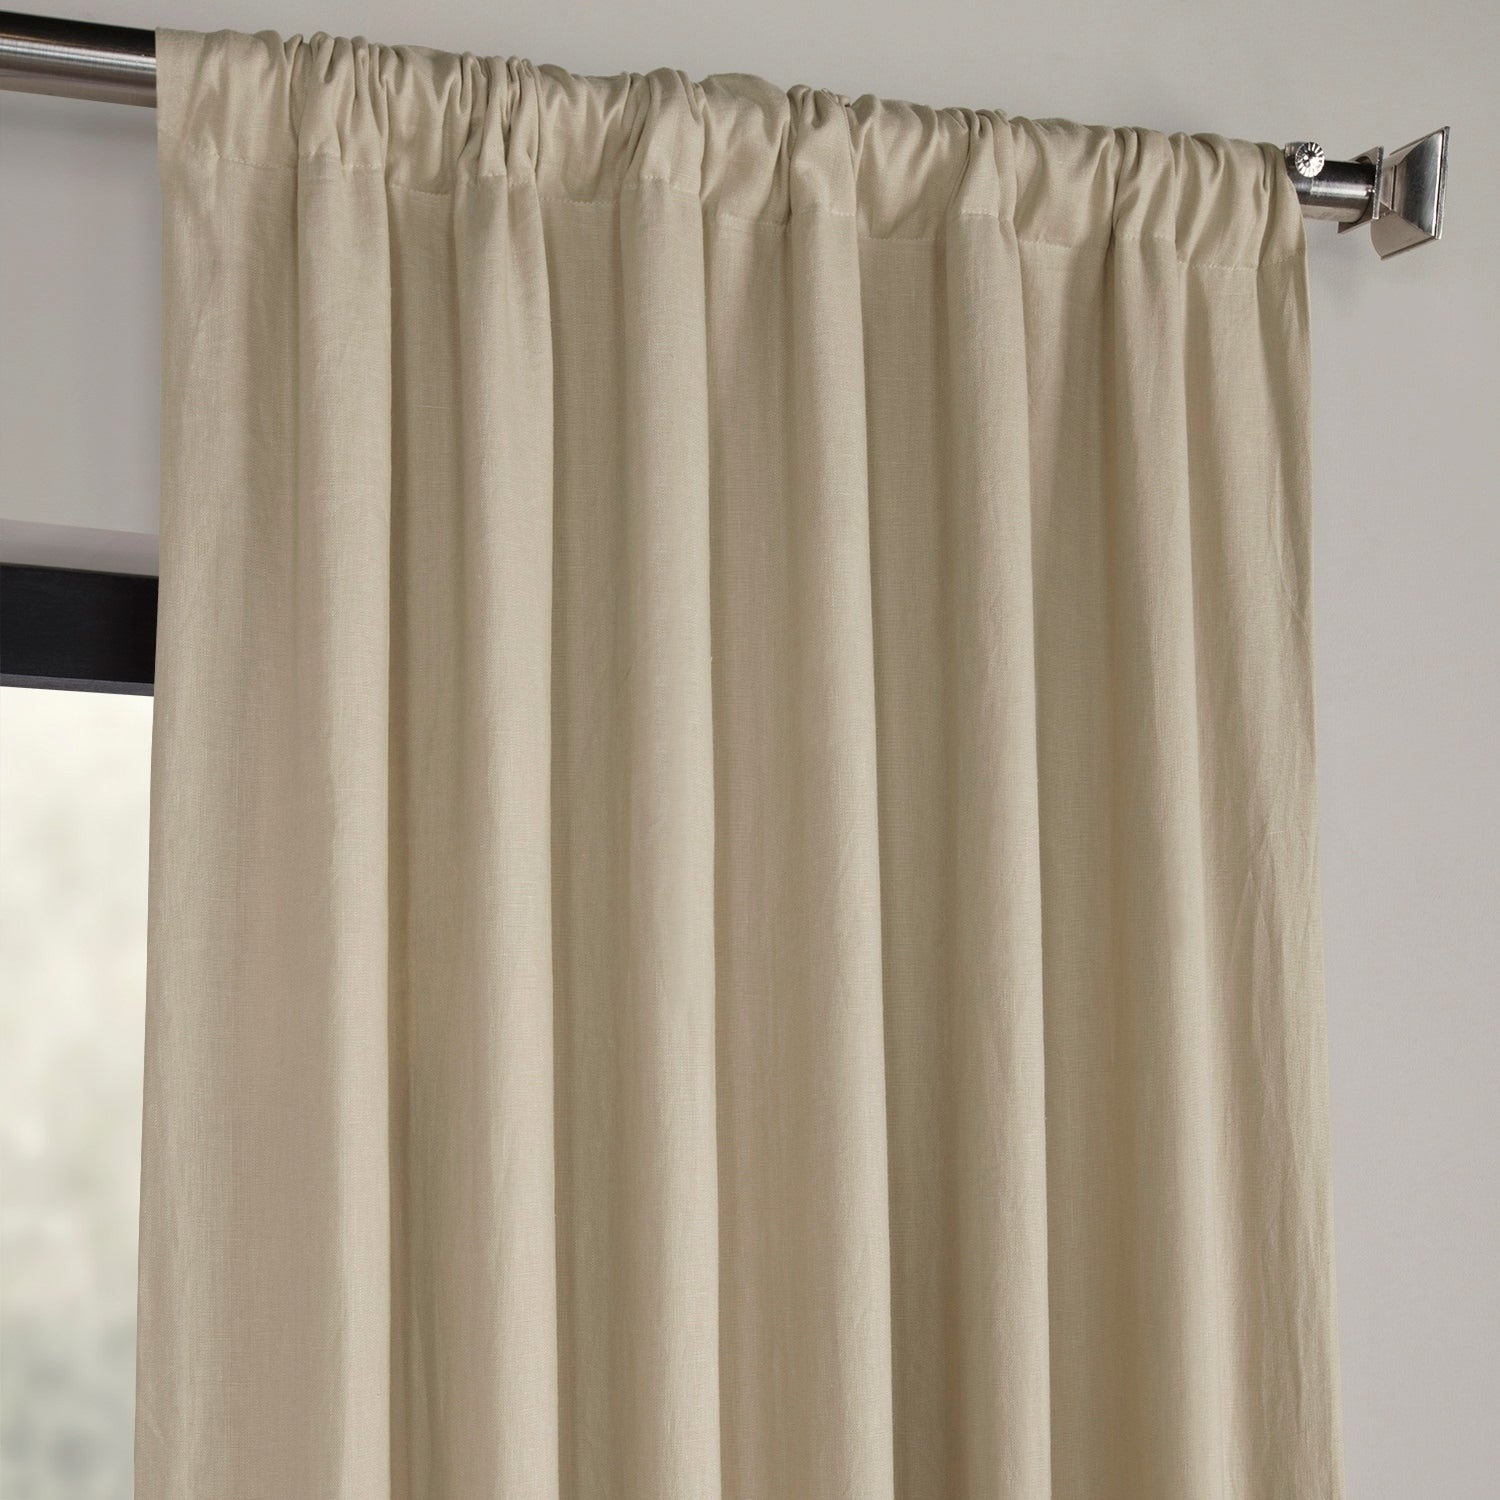 Shop Exclusive Fabrics French Linen Lined Curtain Panel Inside French Linen Lined Curtain Panels (View 9 of 20)